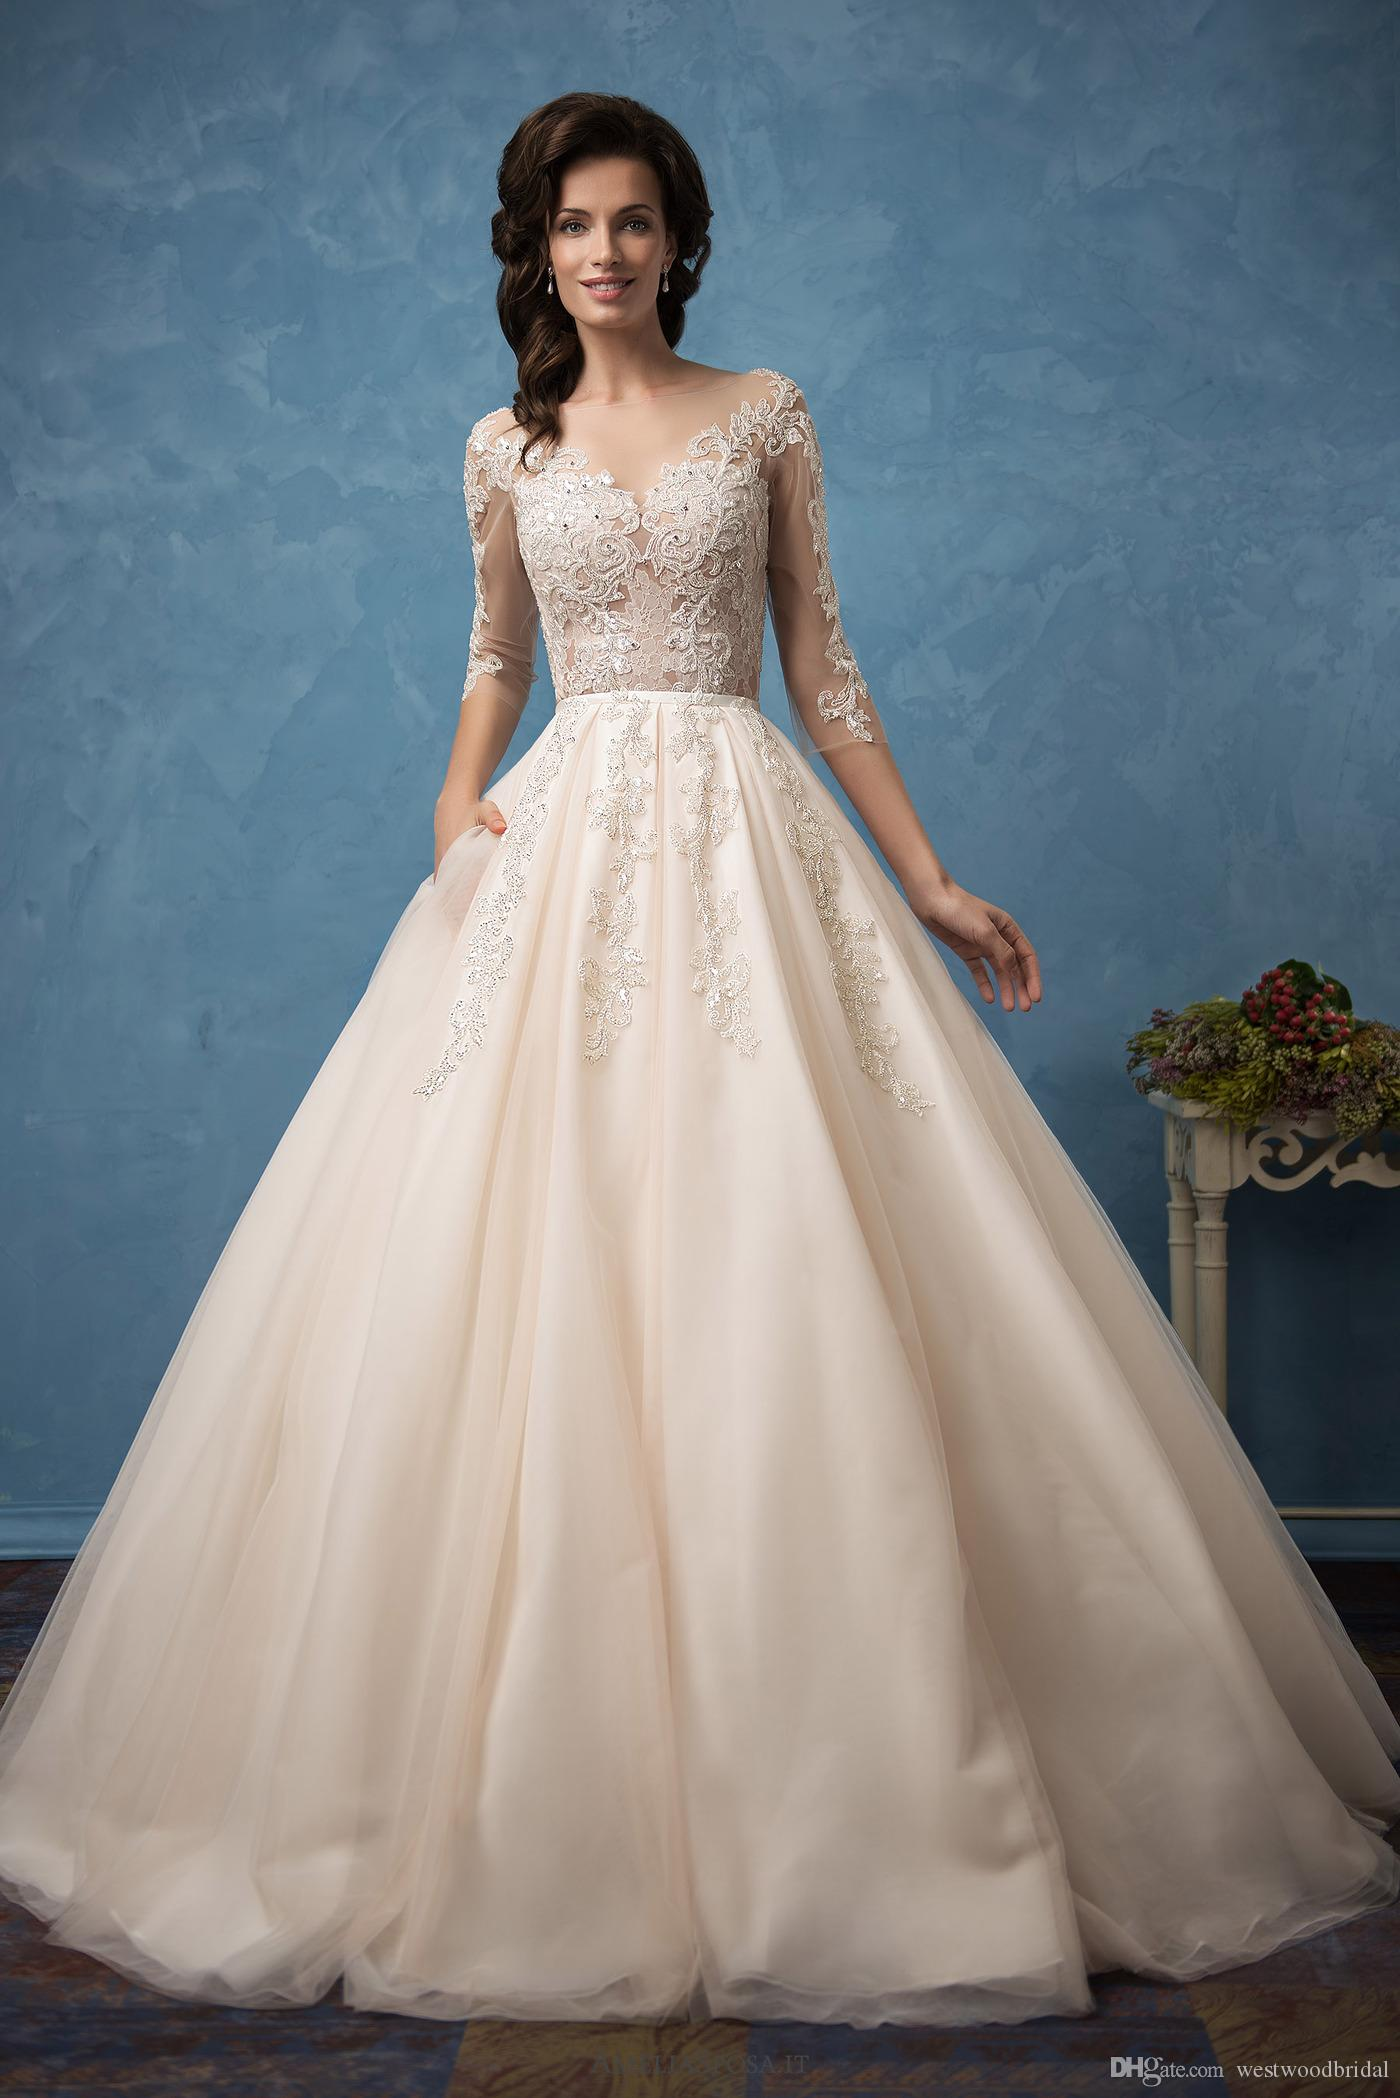 2018 Overskirts Wedding Dress Amelia Sposa Cornelia Lace Ball Gown ...